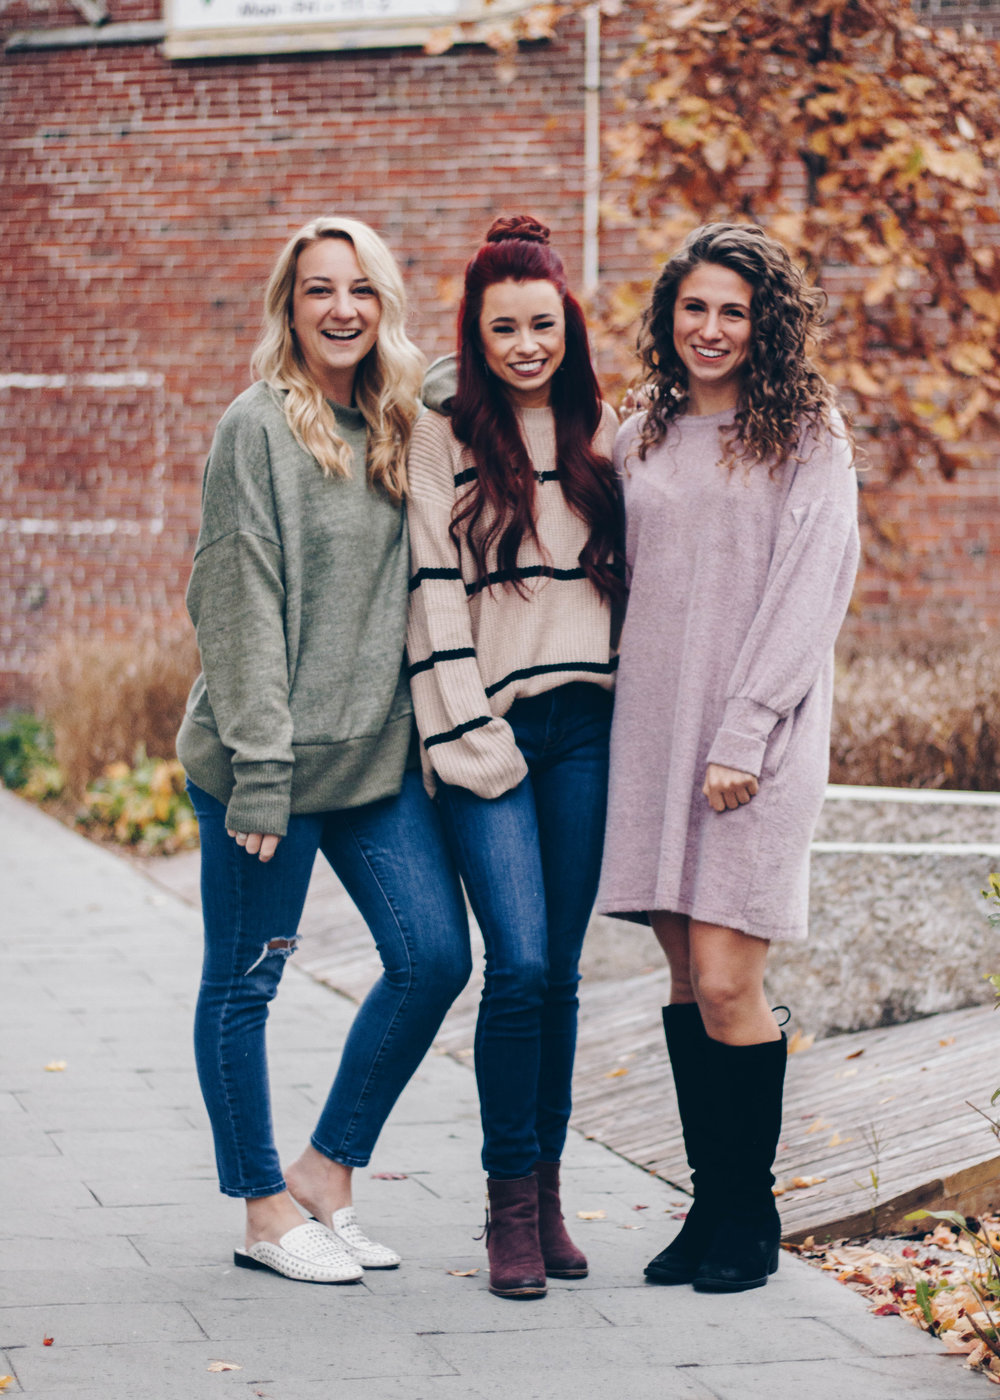 THANKSGIVING OUTFITS GUIDE by Indianapolis fashion blogger Trendy in Indy